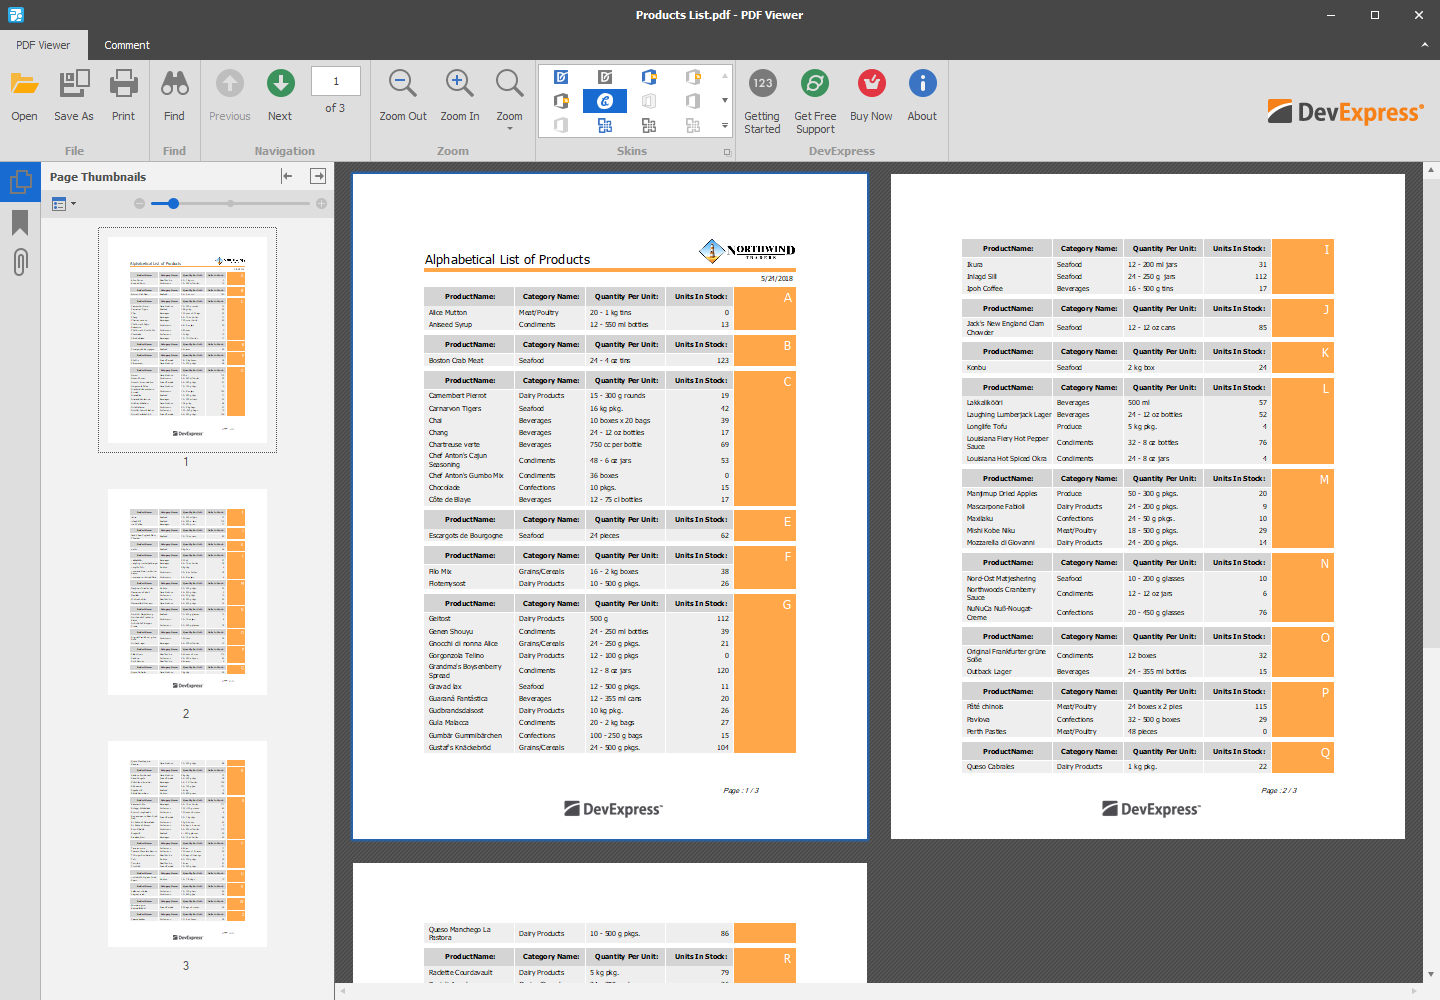 WinForms PDF Viewer - Product List